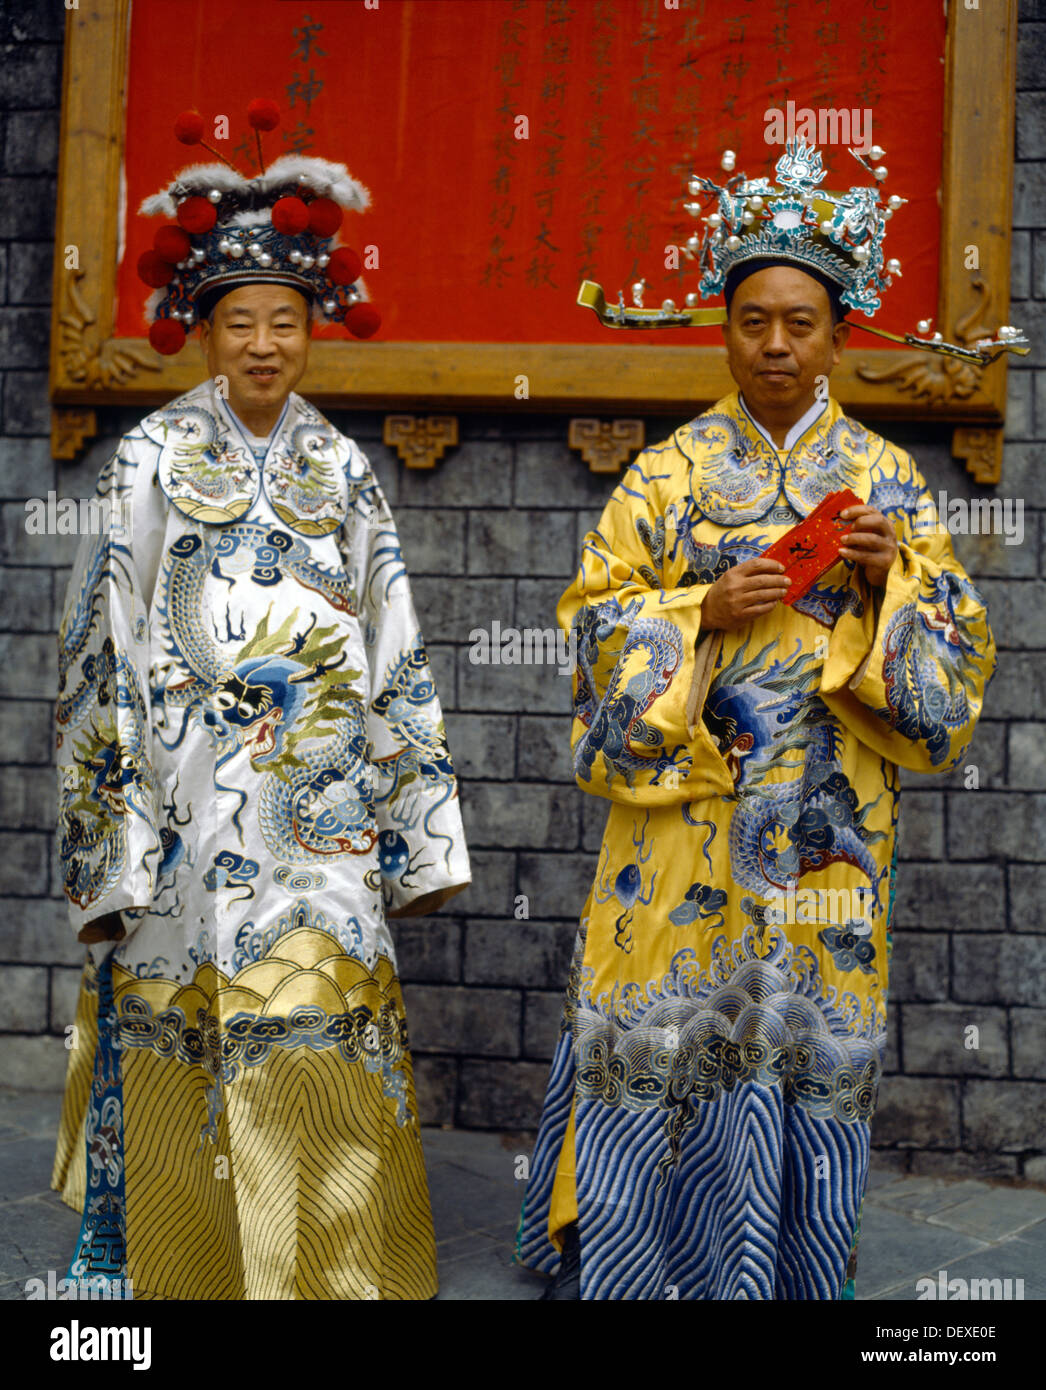 chinese man u0026 woman in traditional costume sung dynasty village hong kong  sc 1 st  Alamy & chinese man u0026 woman in traditional costume sung dynasty village hong ...